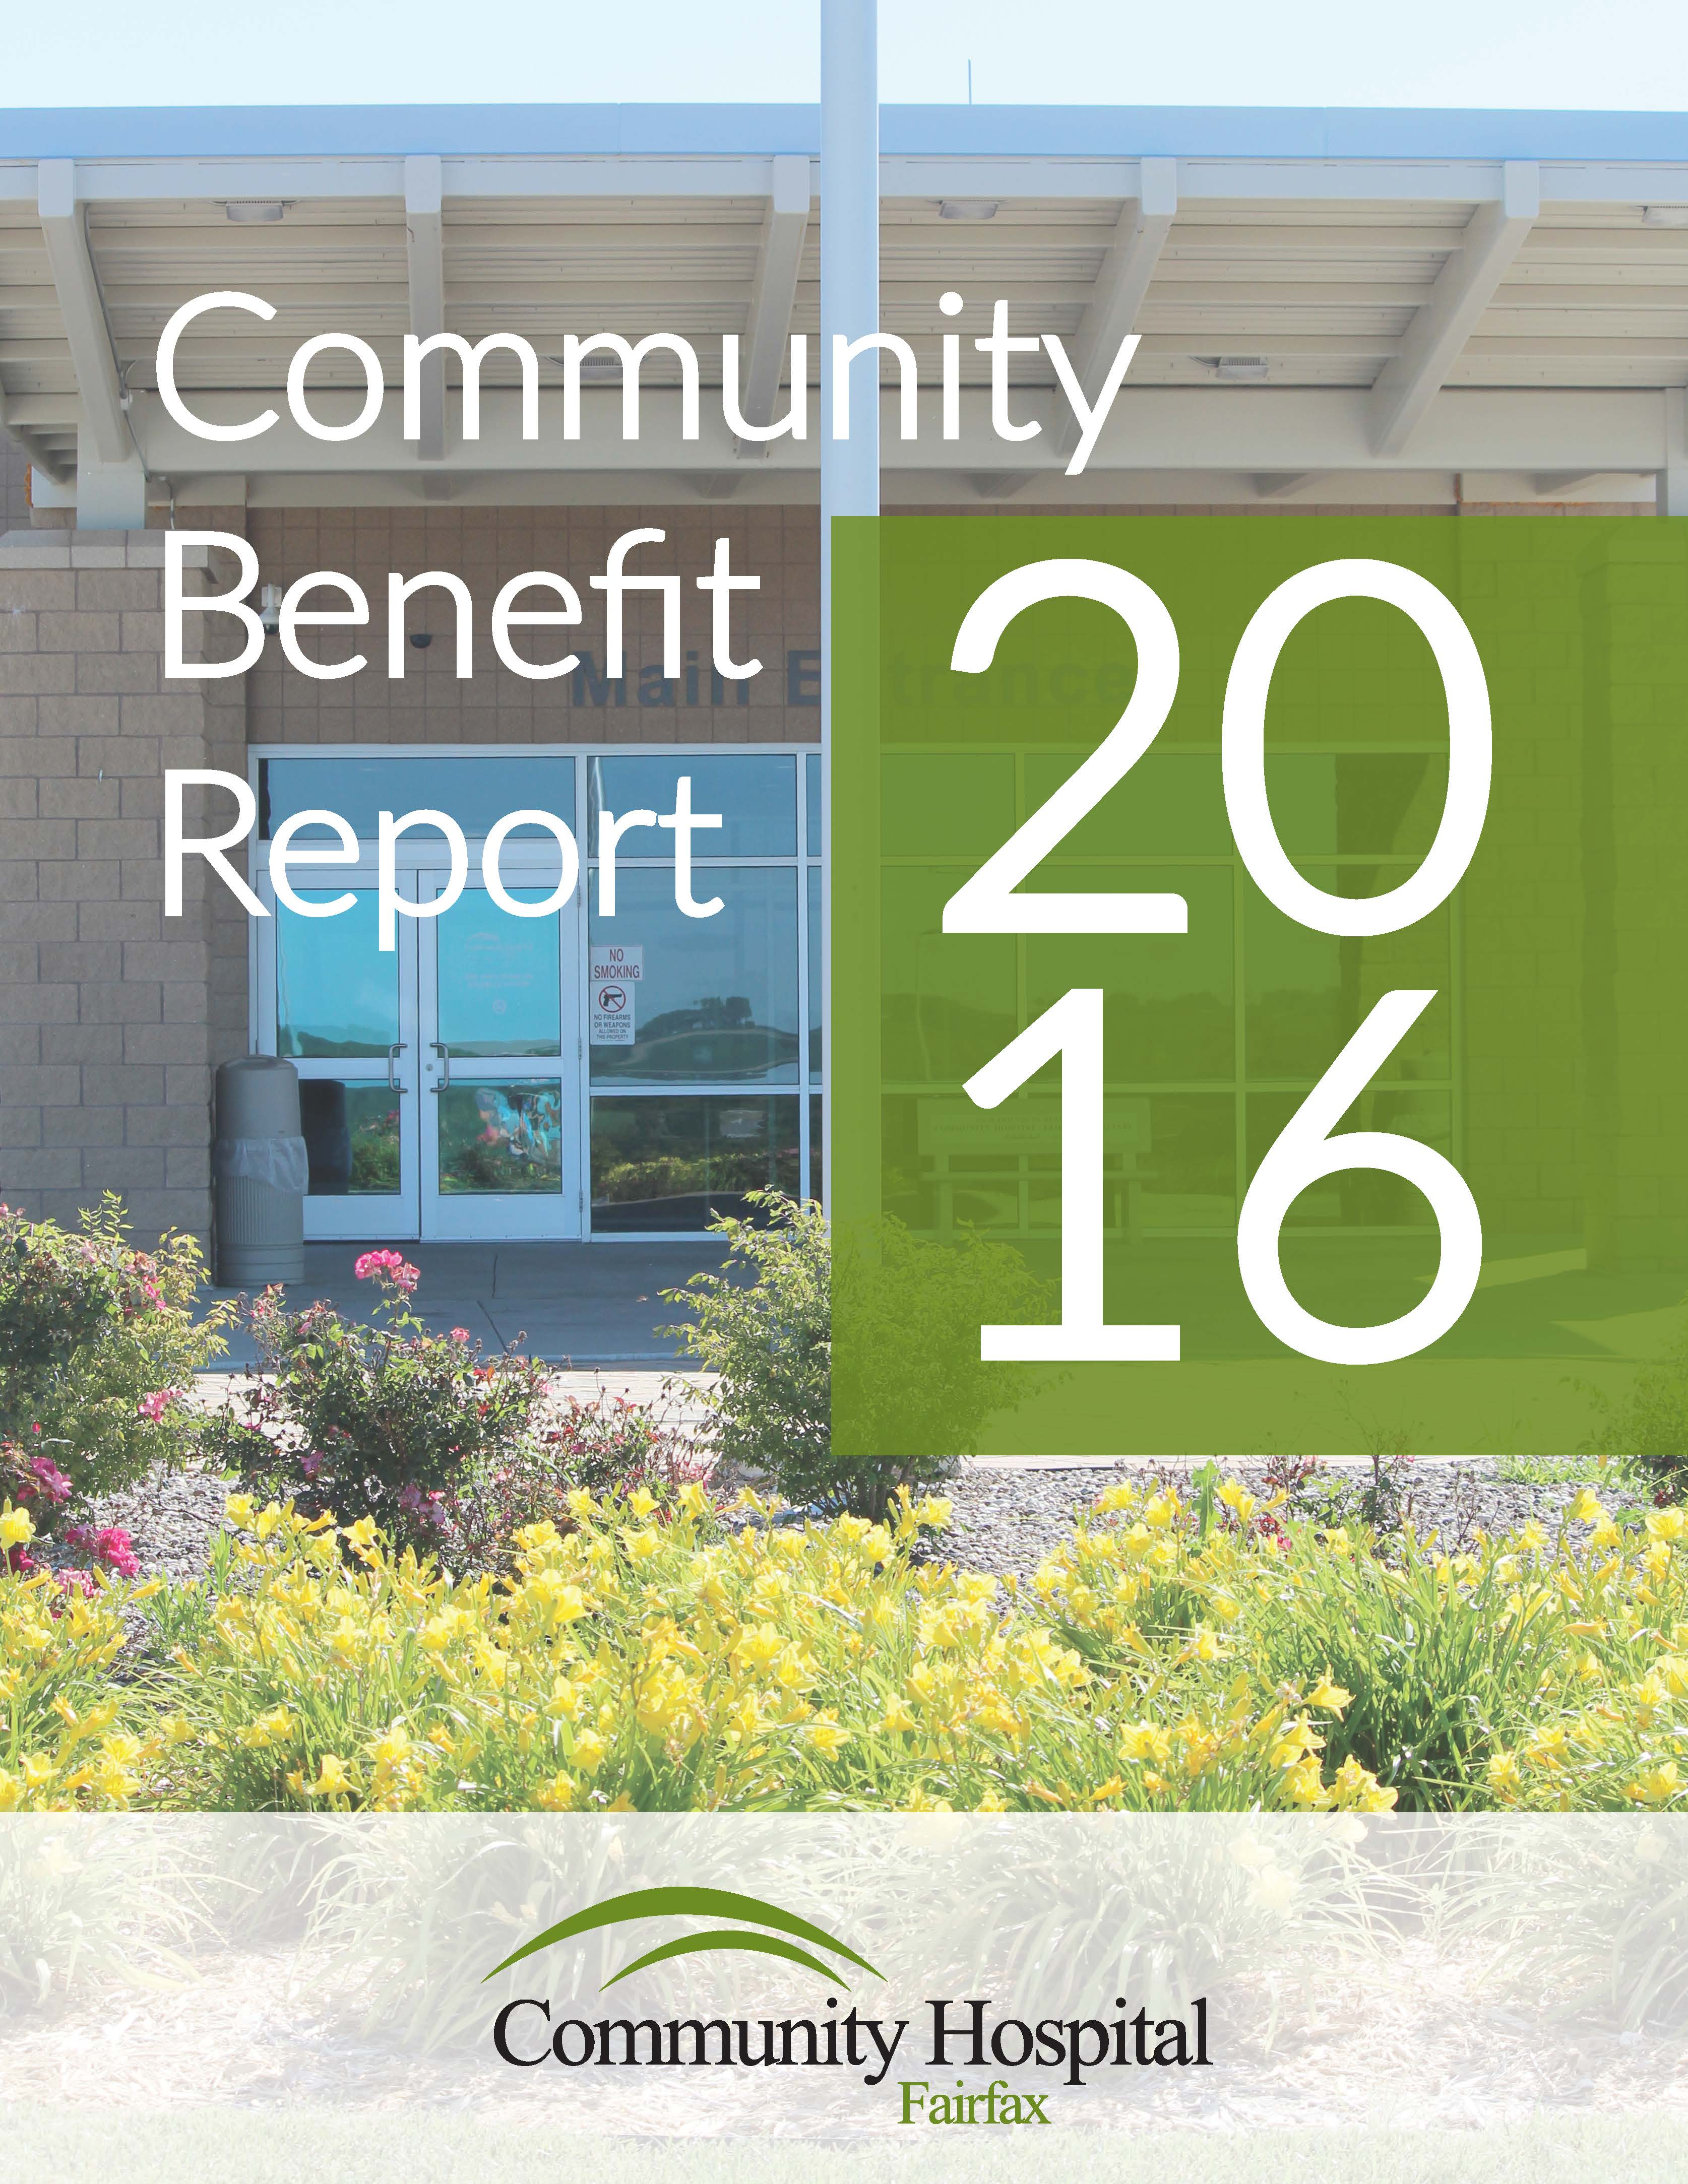 Community Benefit Report Cover Image.jpg